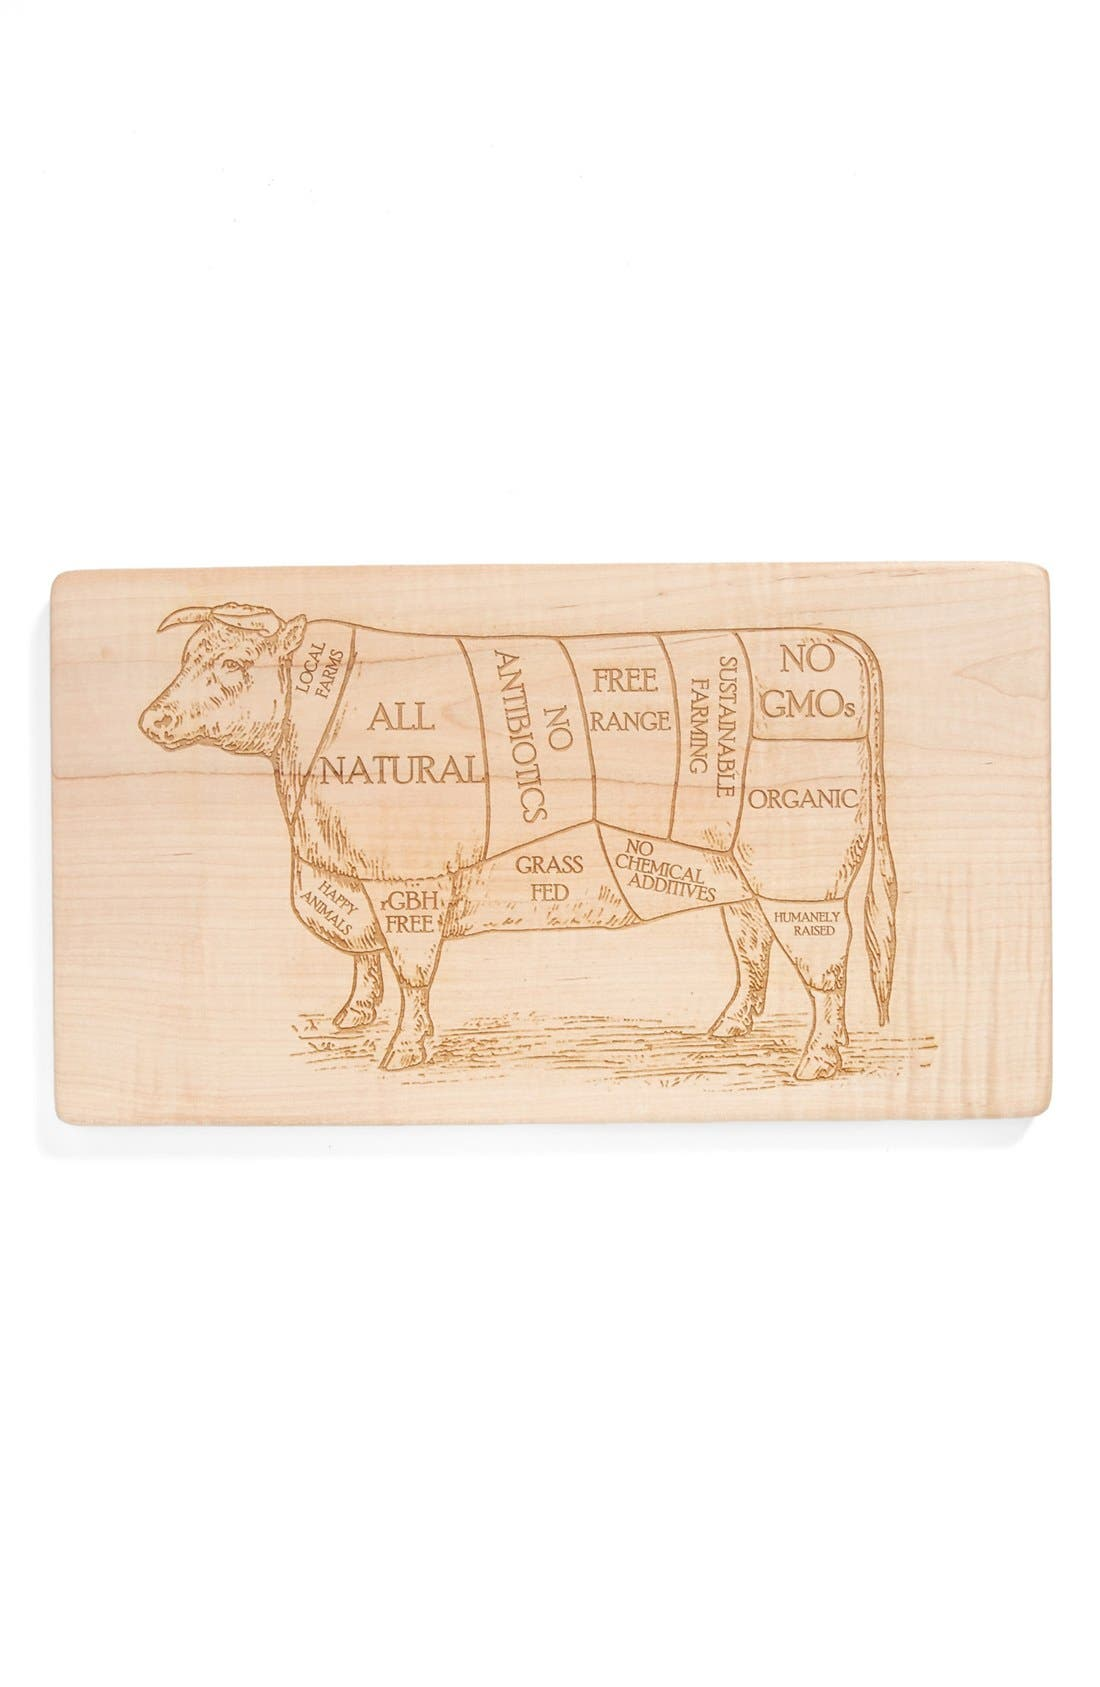 Main Image - Milk and Honey Luxuries Vintage Butcher's Diagram Cutting Board